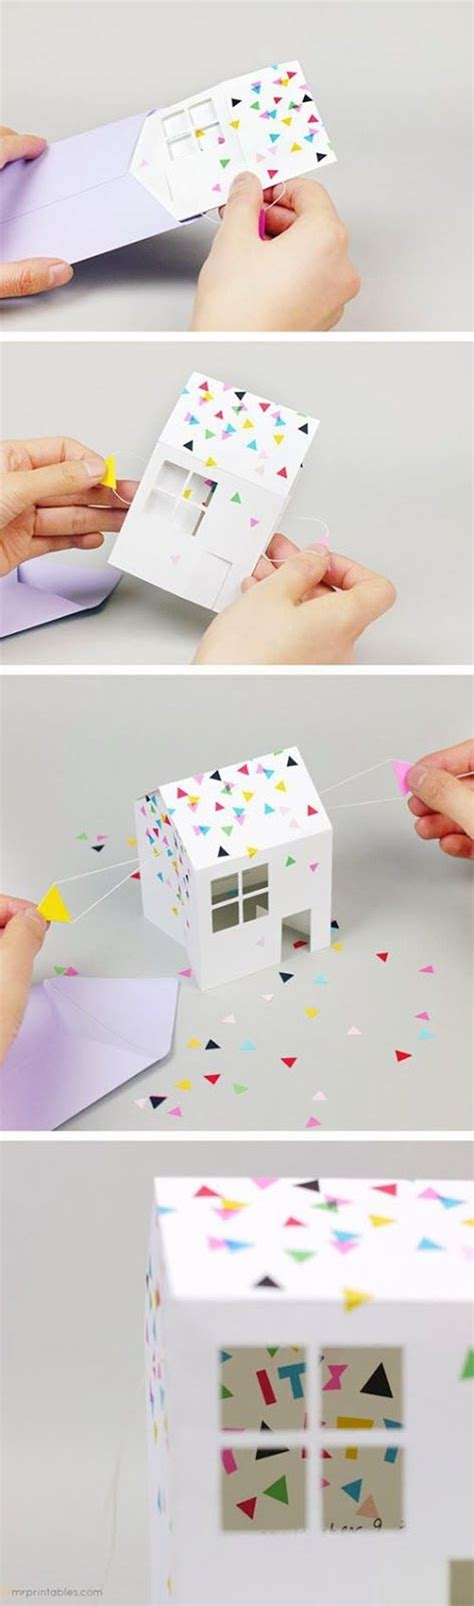 Craft Ideas Using Paper - creative paper craft ideas 30 picked